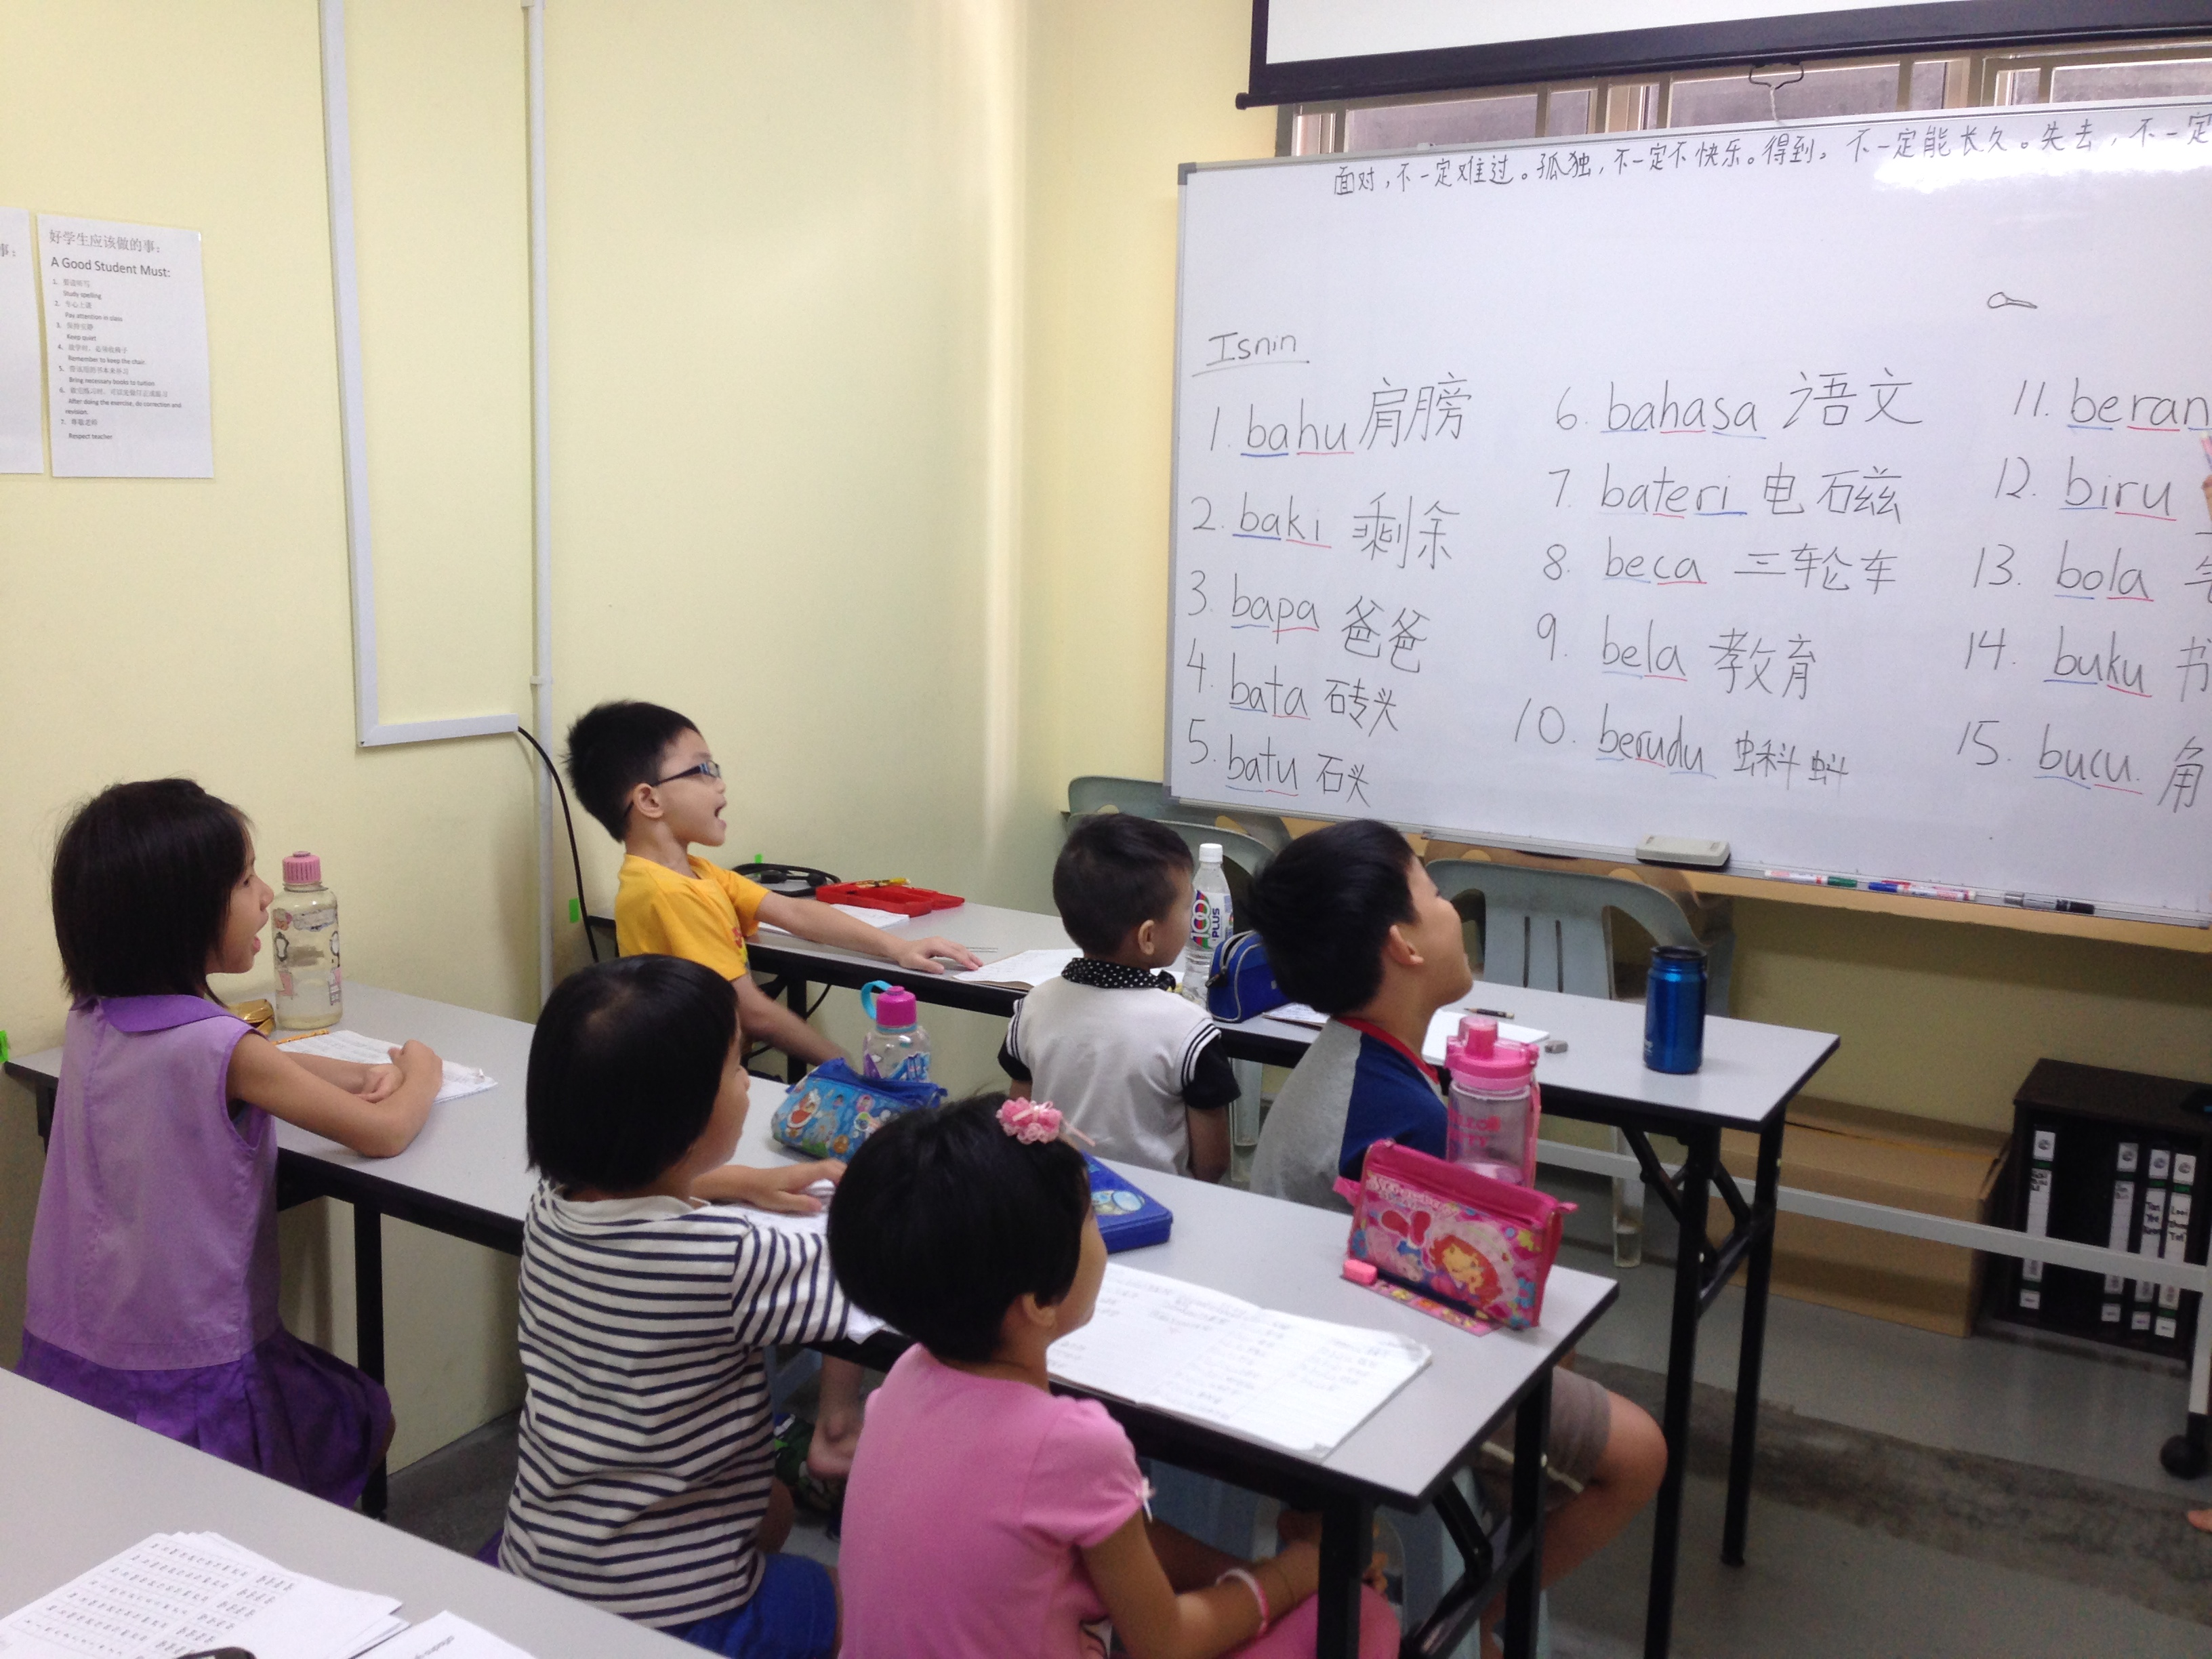 2013 11 18 10.30.57 K2 Tuition in Johor 2014 年,一年级补习招生